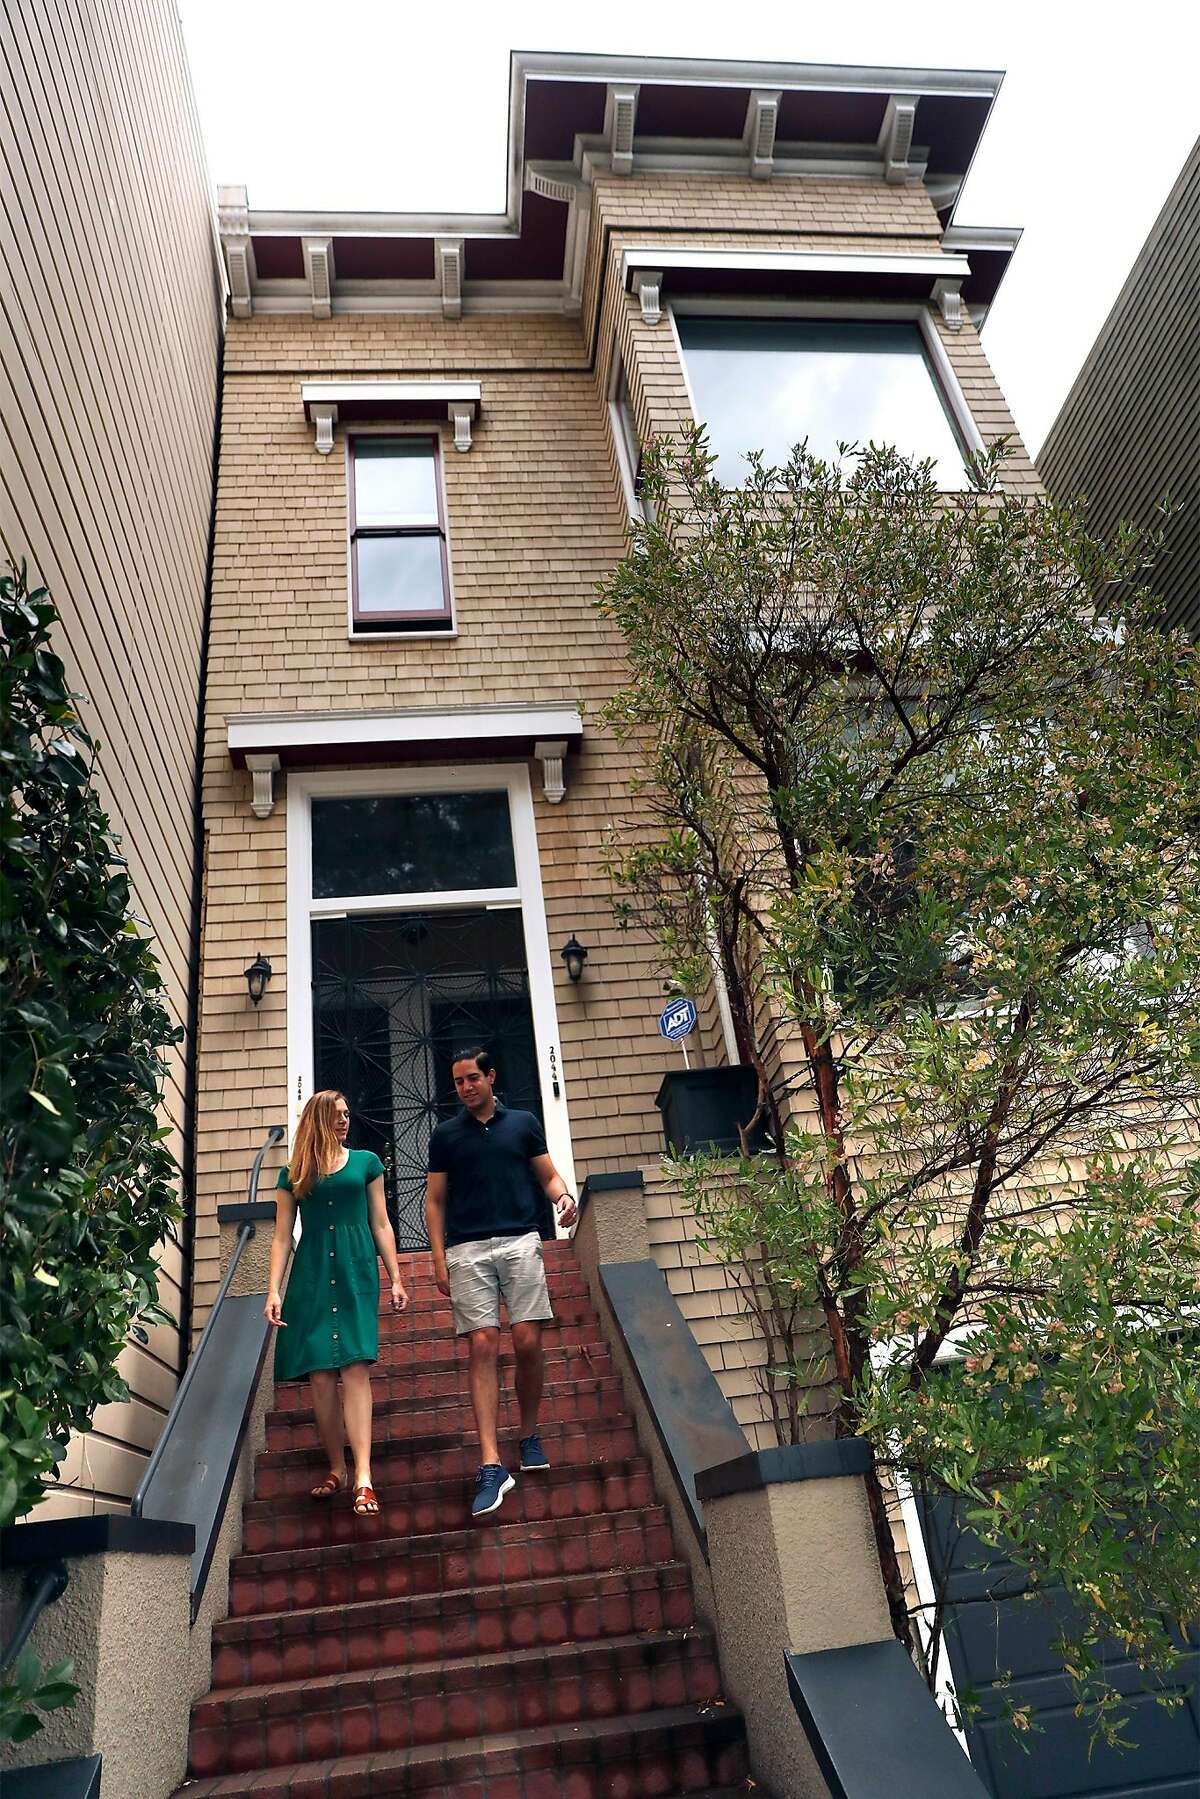 Shanna Wagnor and her husband, Sean Lewis, in front of their Pacific Heights condo in San Francisco, Calif., on Sunday, August 16, 2020. The couple are selling their San Francisco residence after buying a larger house in Piedmont.